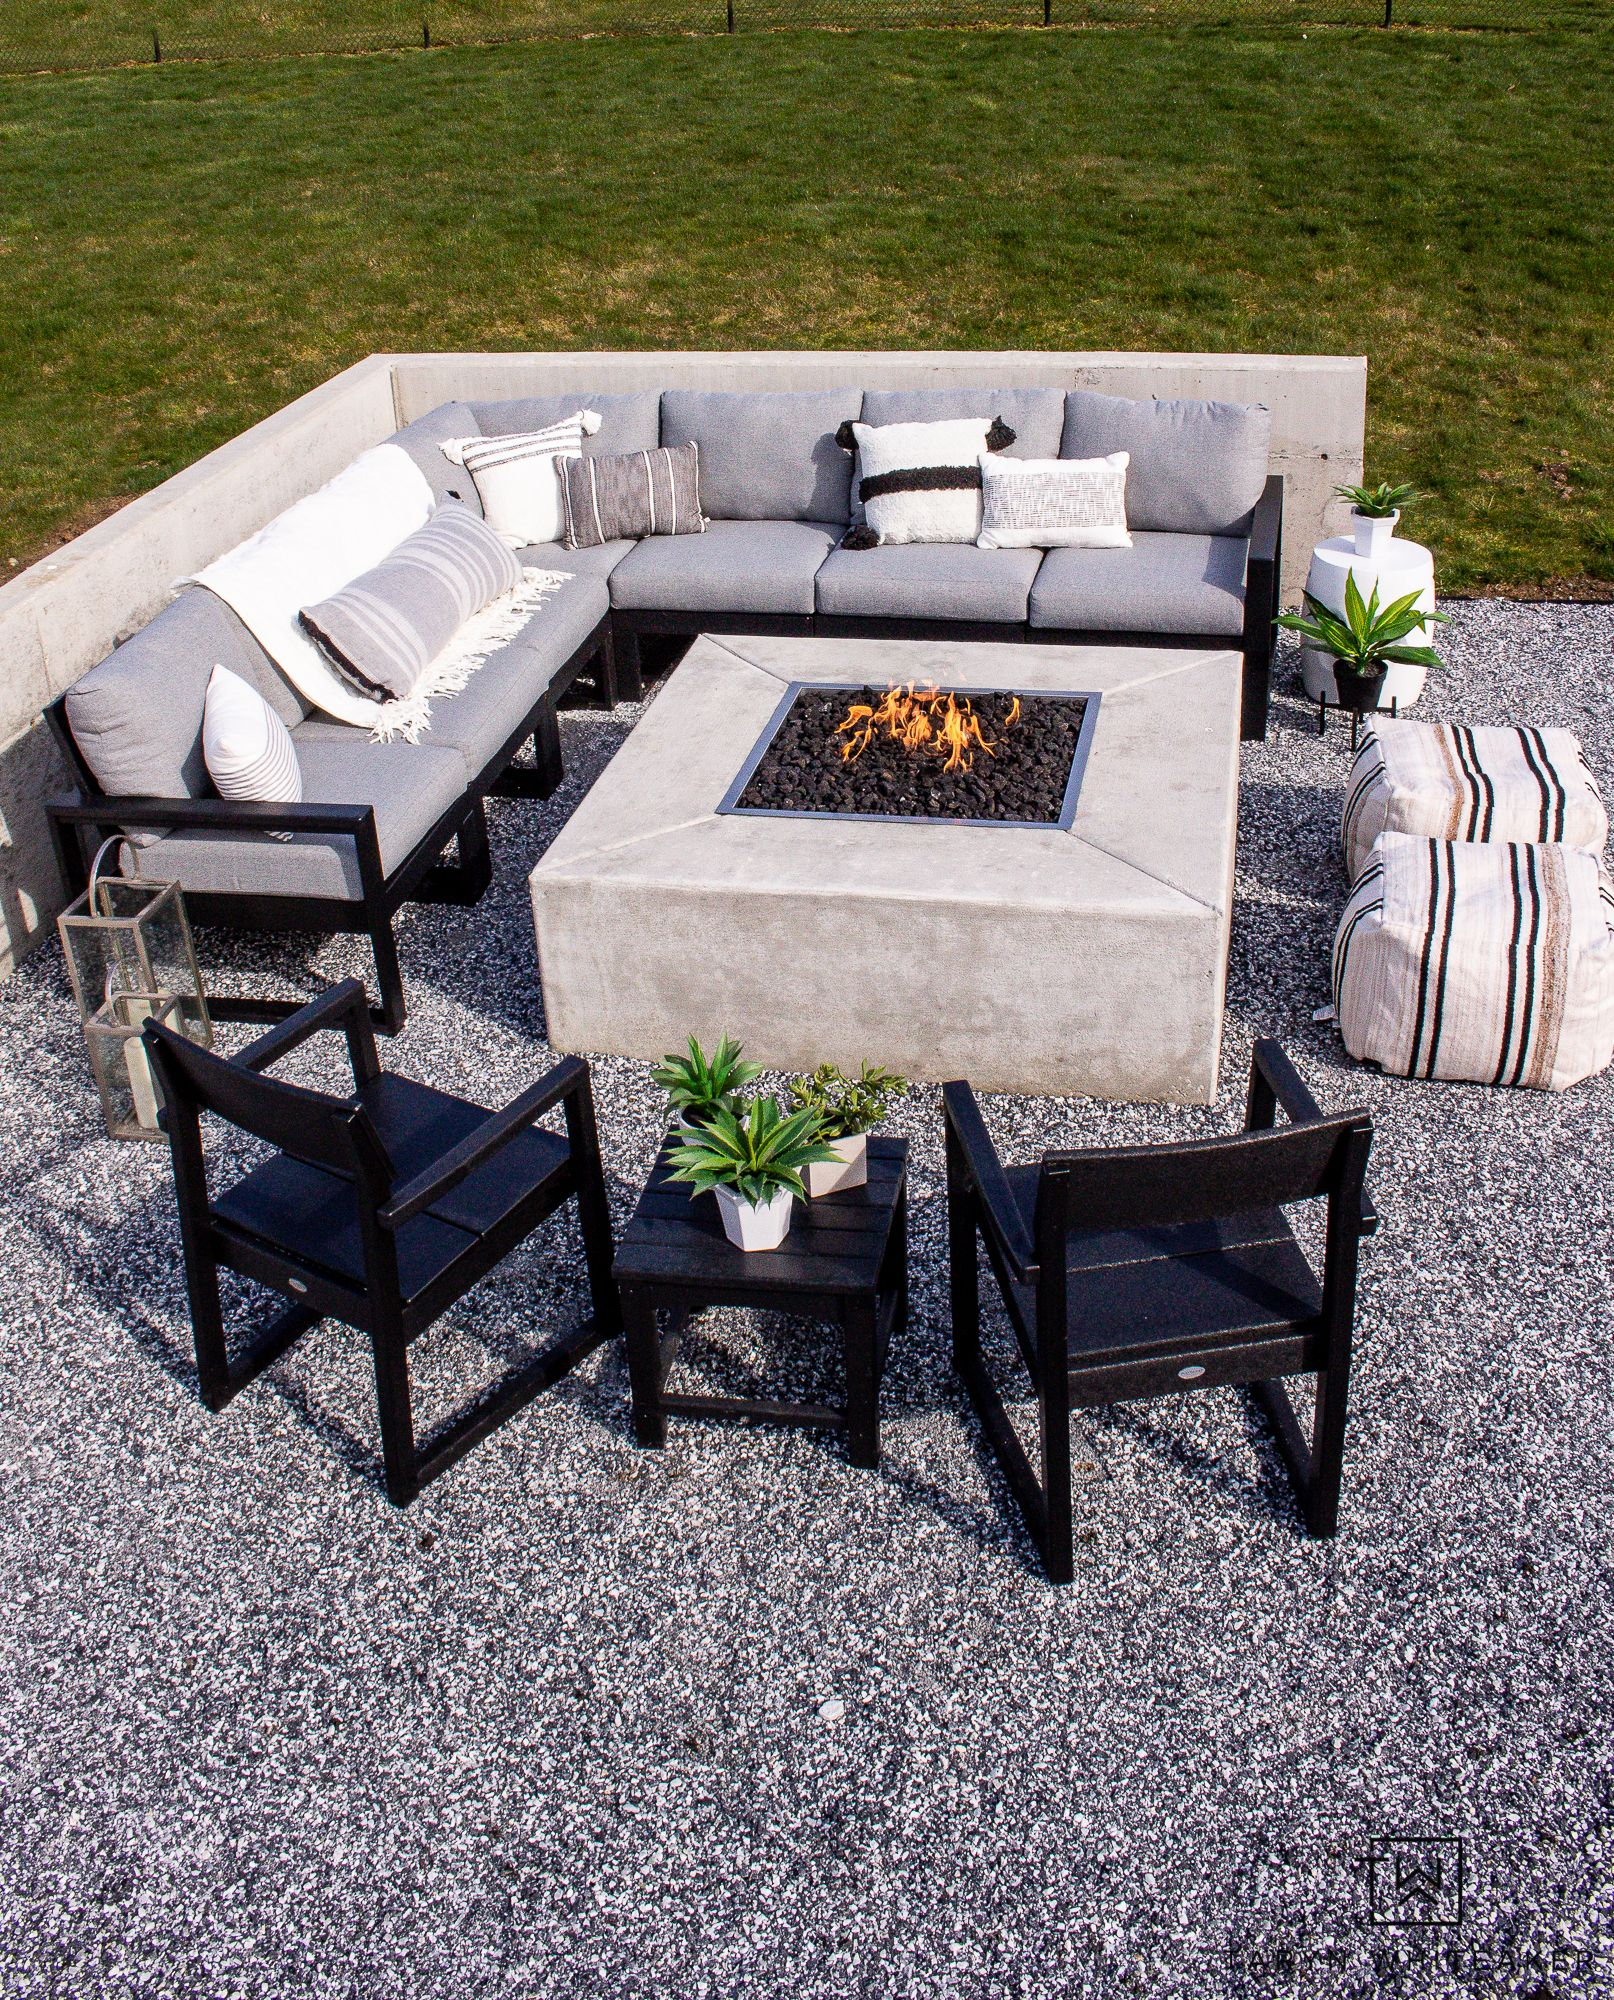 Modern Outdoor Fire Pit Seating Area In 2021 Fire Pit Seating Area Outdoor Fire Pit Seating Modern Outdoor Firepit Modern outdoor fire pit set